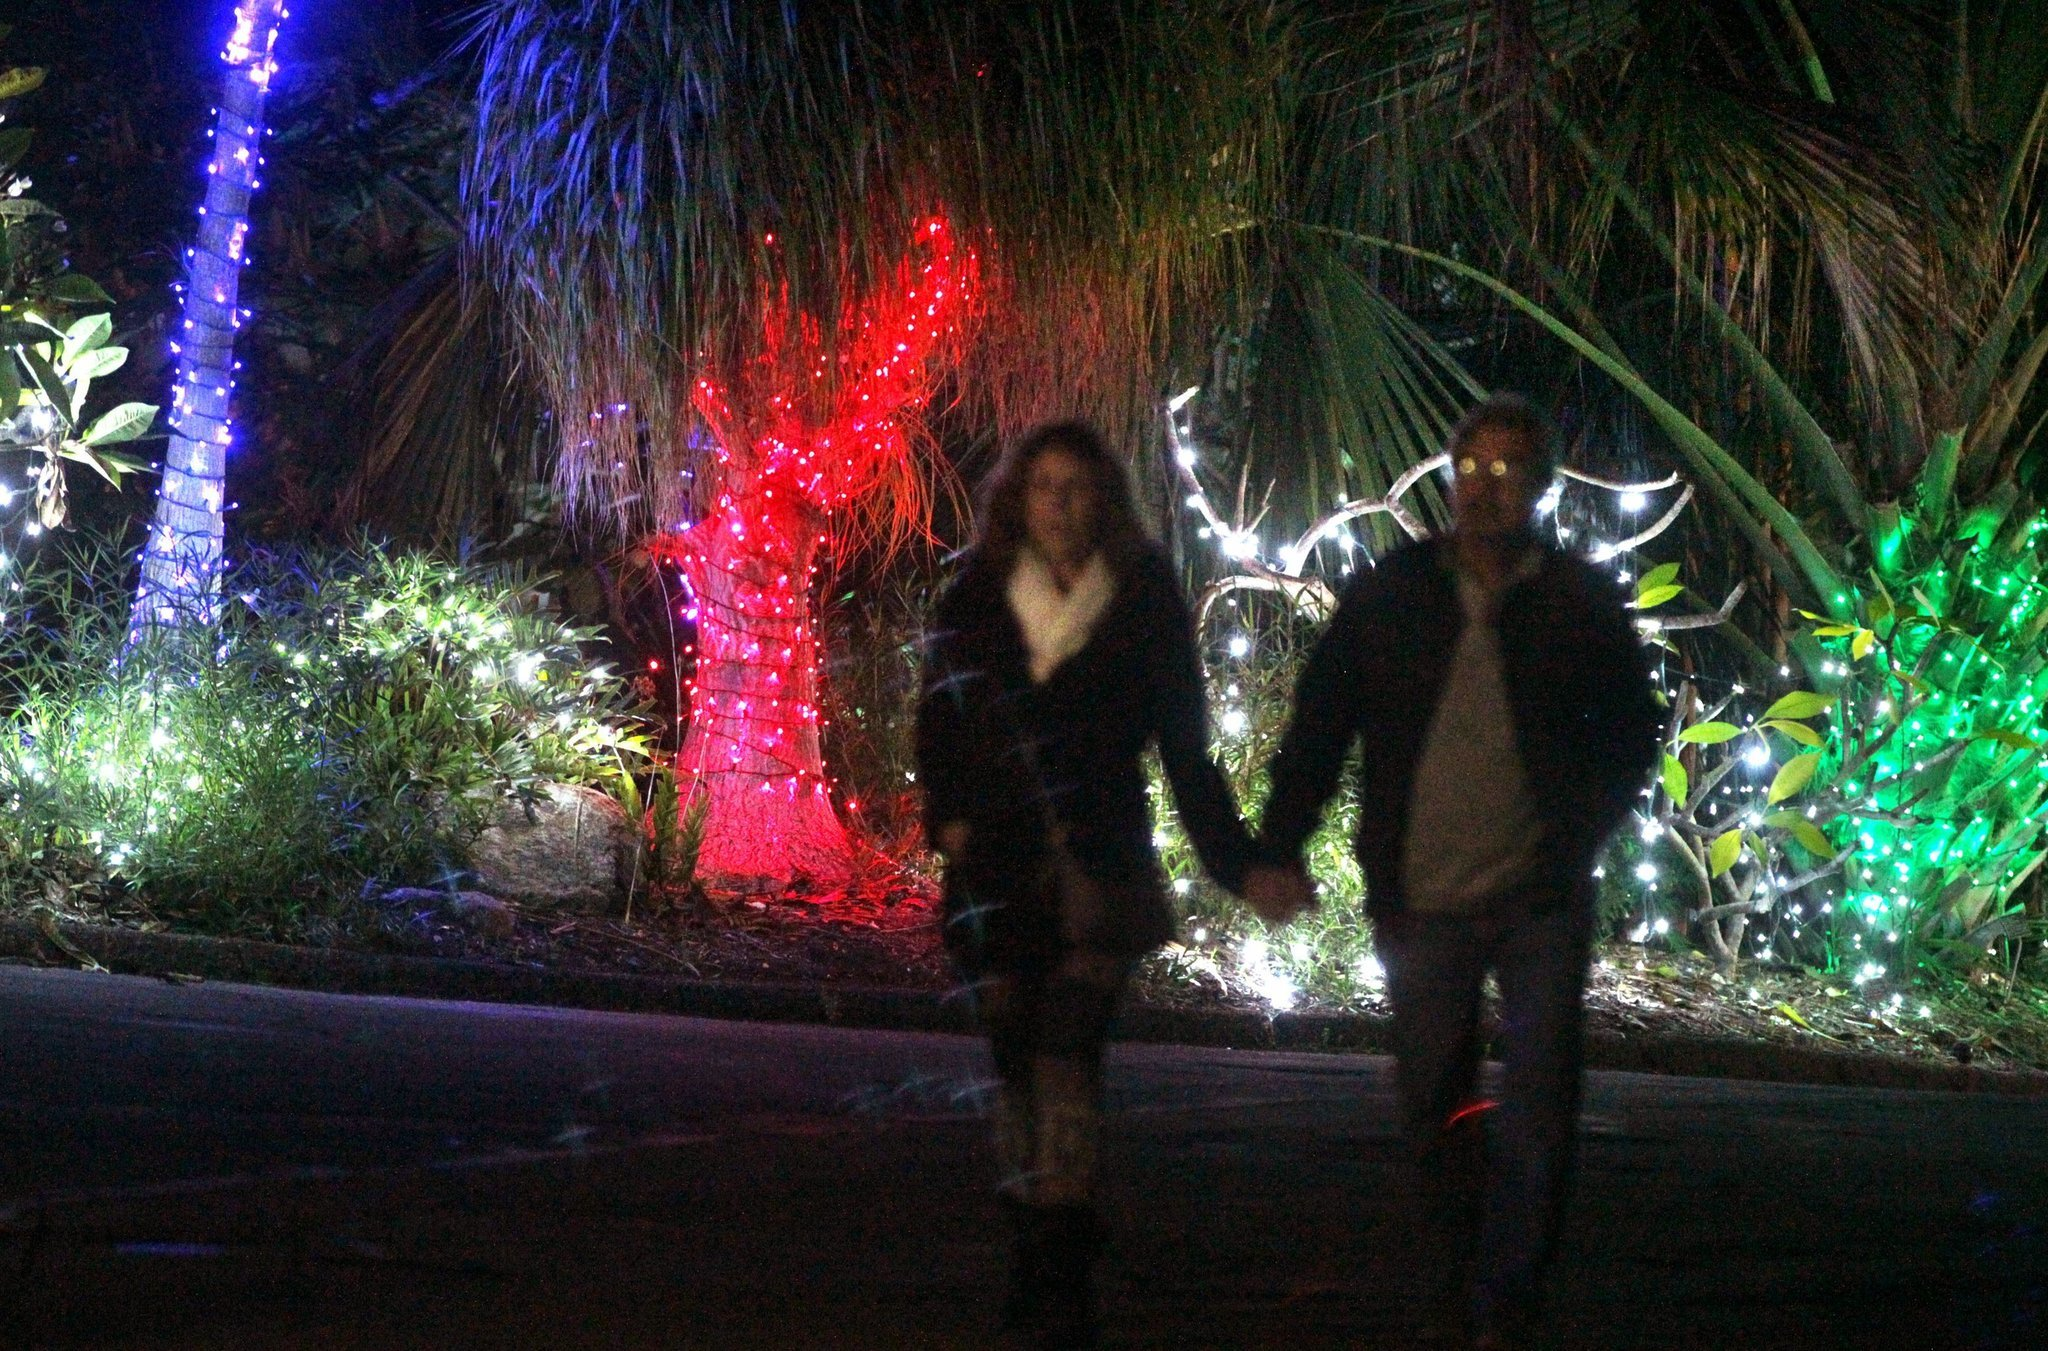 Garden of Lights in Encinitas The San Diego UnionTribune